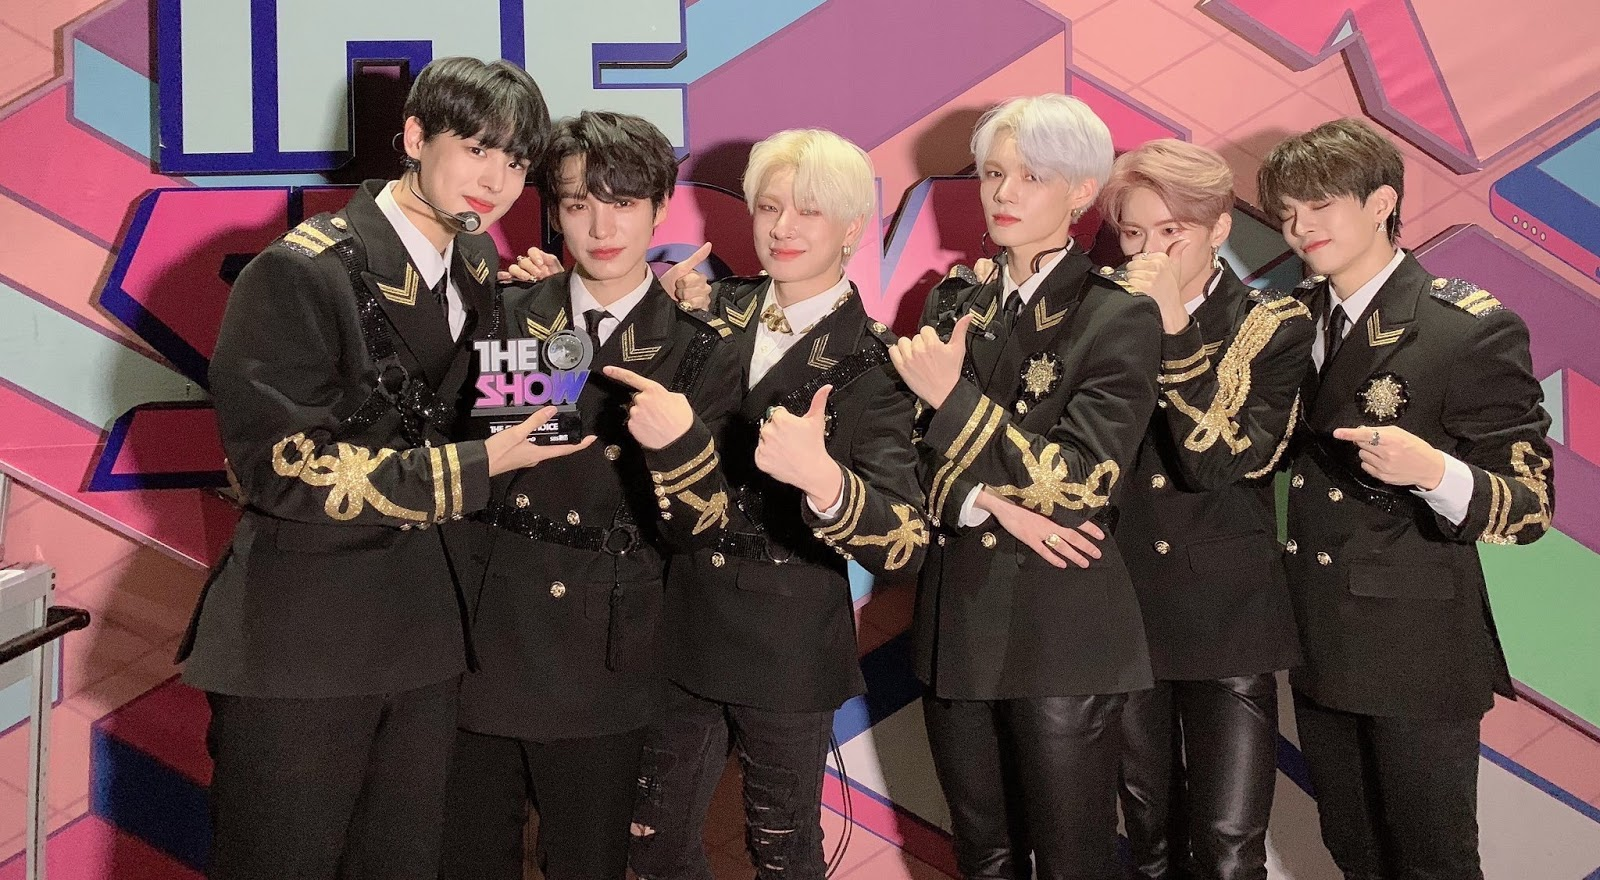 VICTON Wins Their First Trophy in Music Program Since Debut, Congratulations!